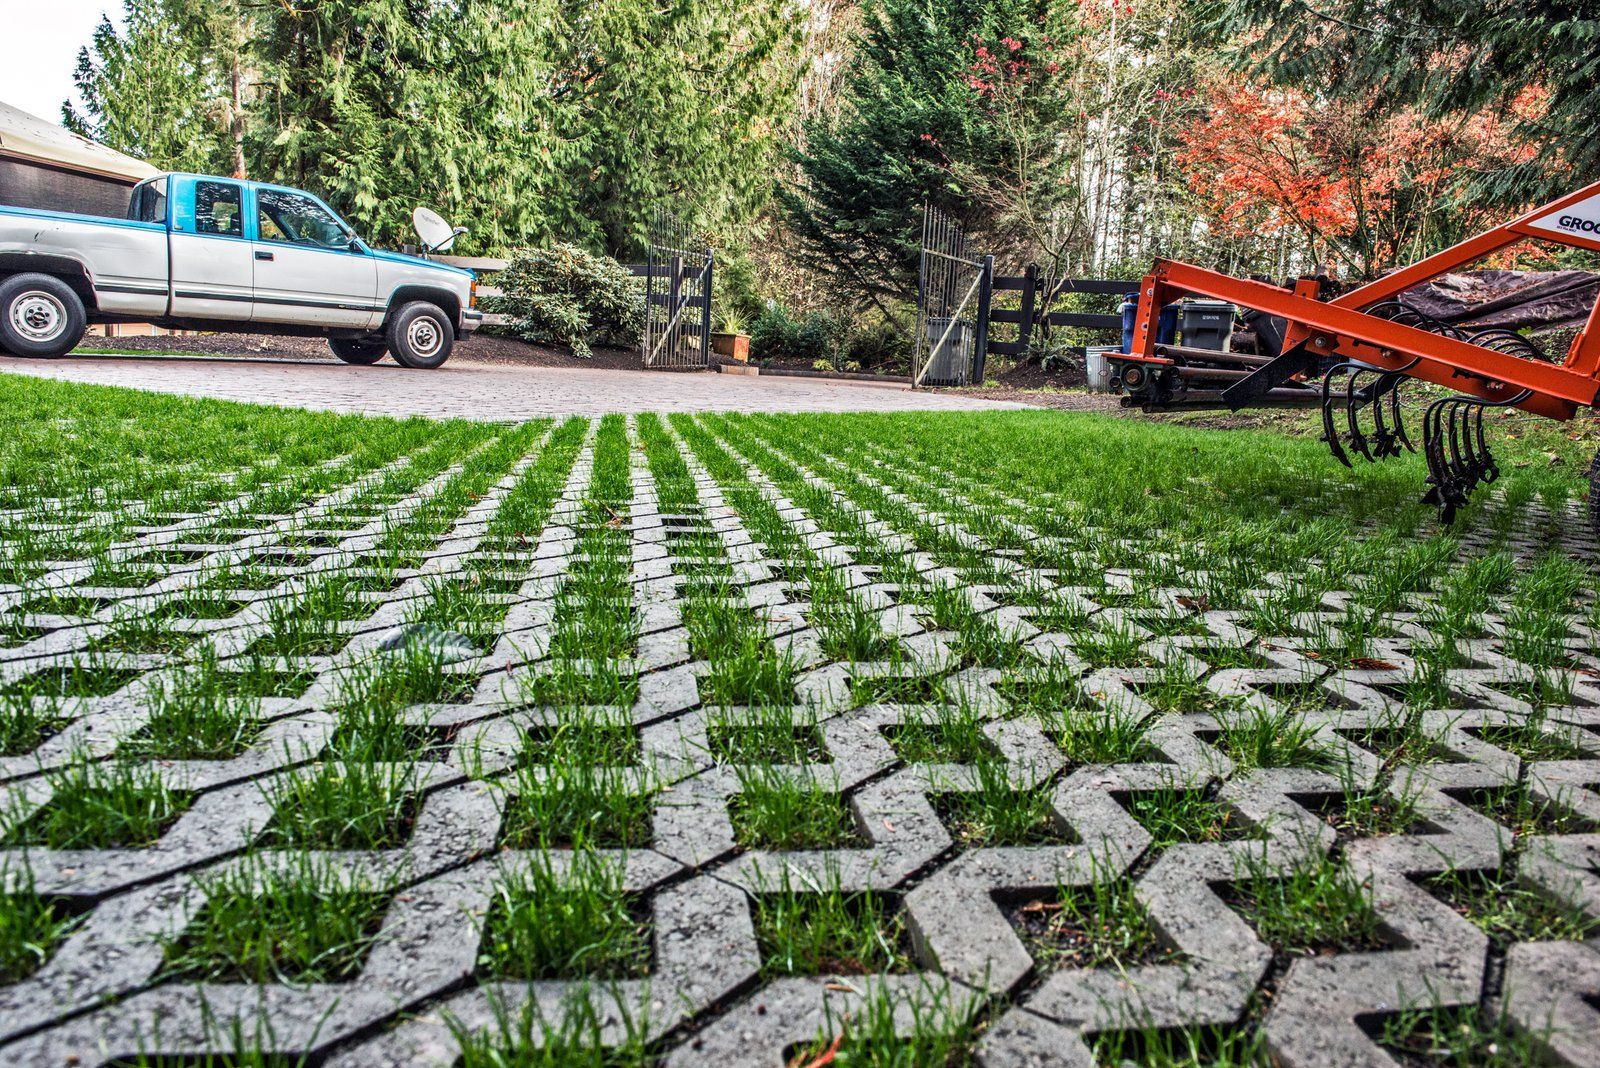 Related Image Grass Pavers Driveway Permeable Pavers Grass Pavers